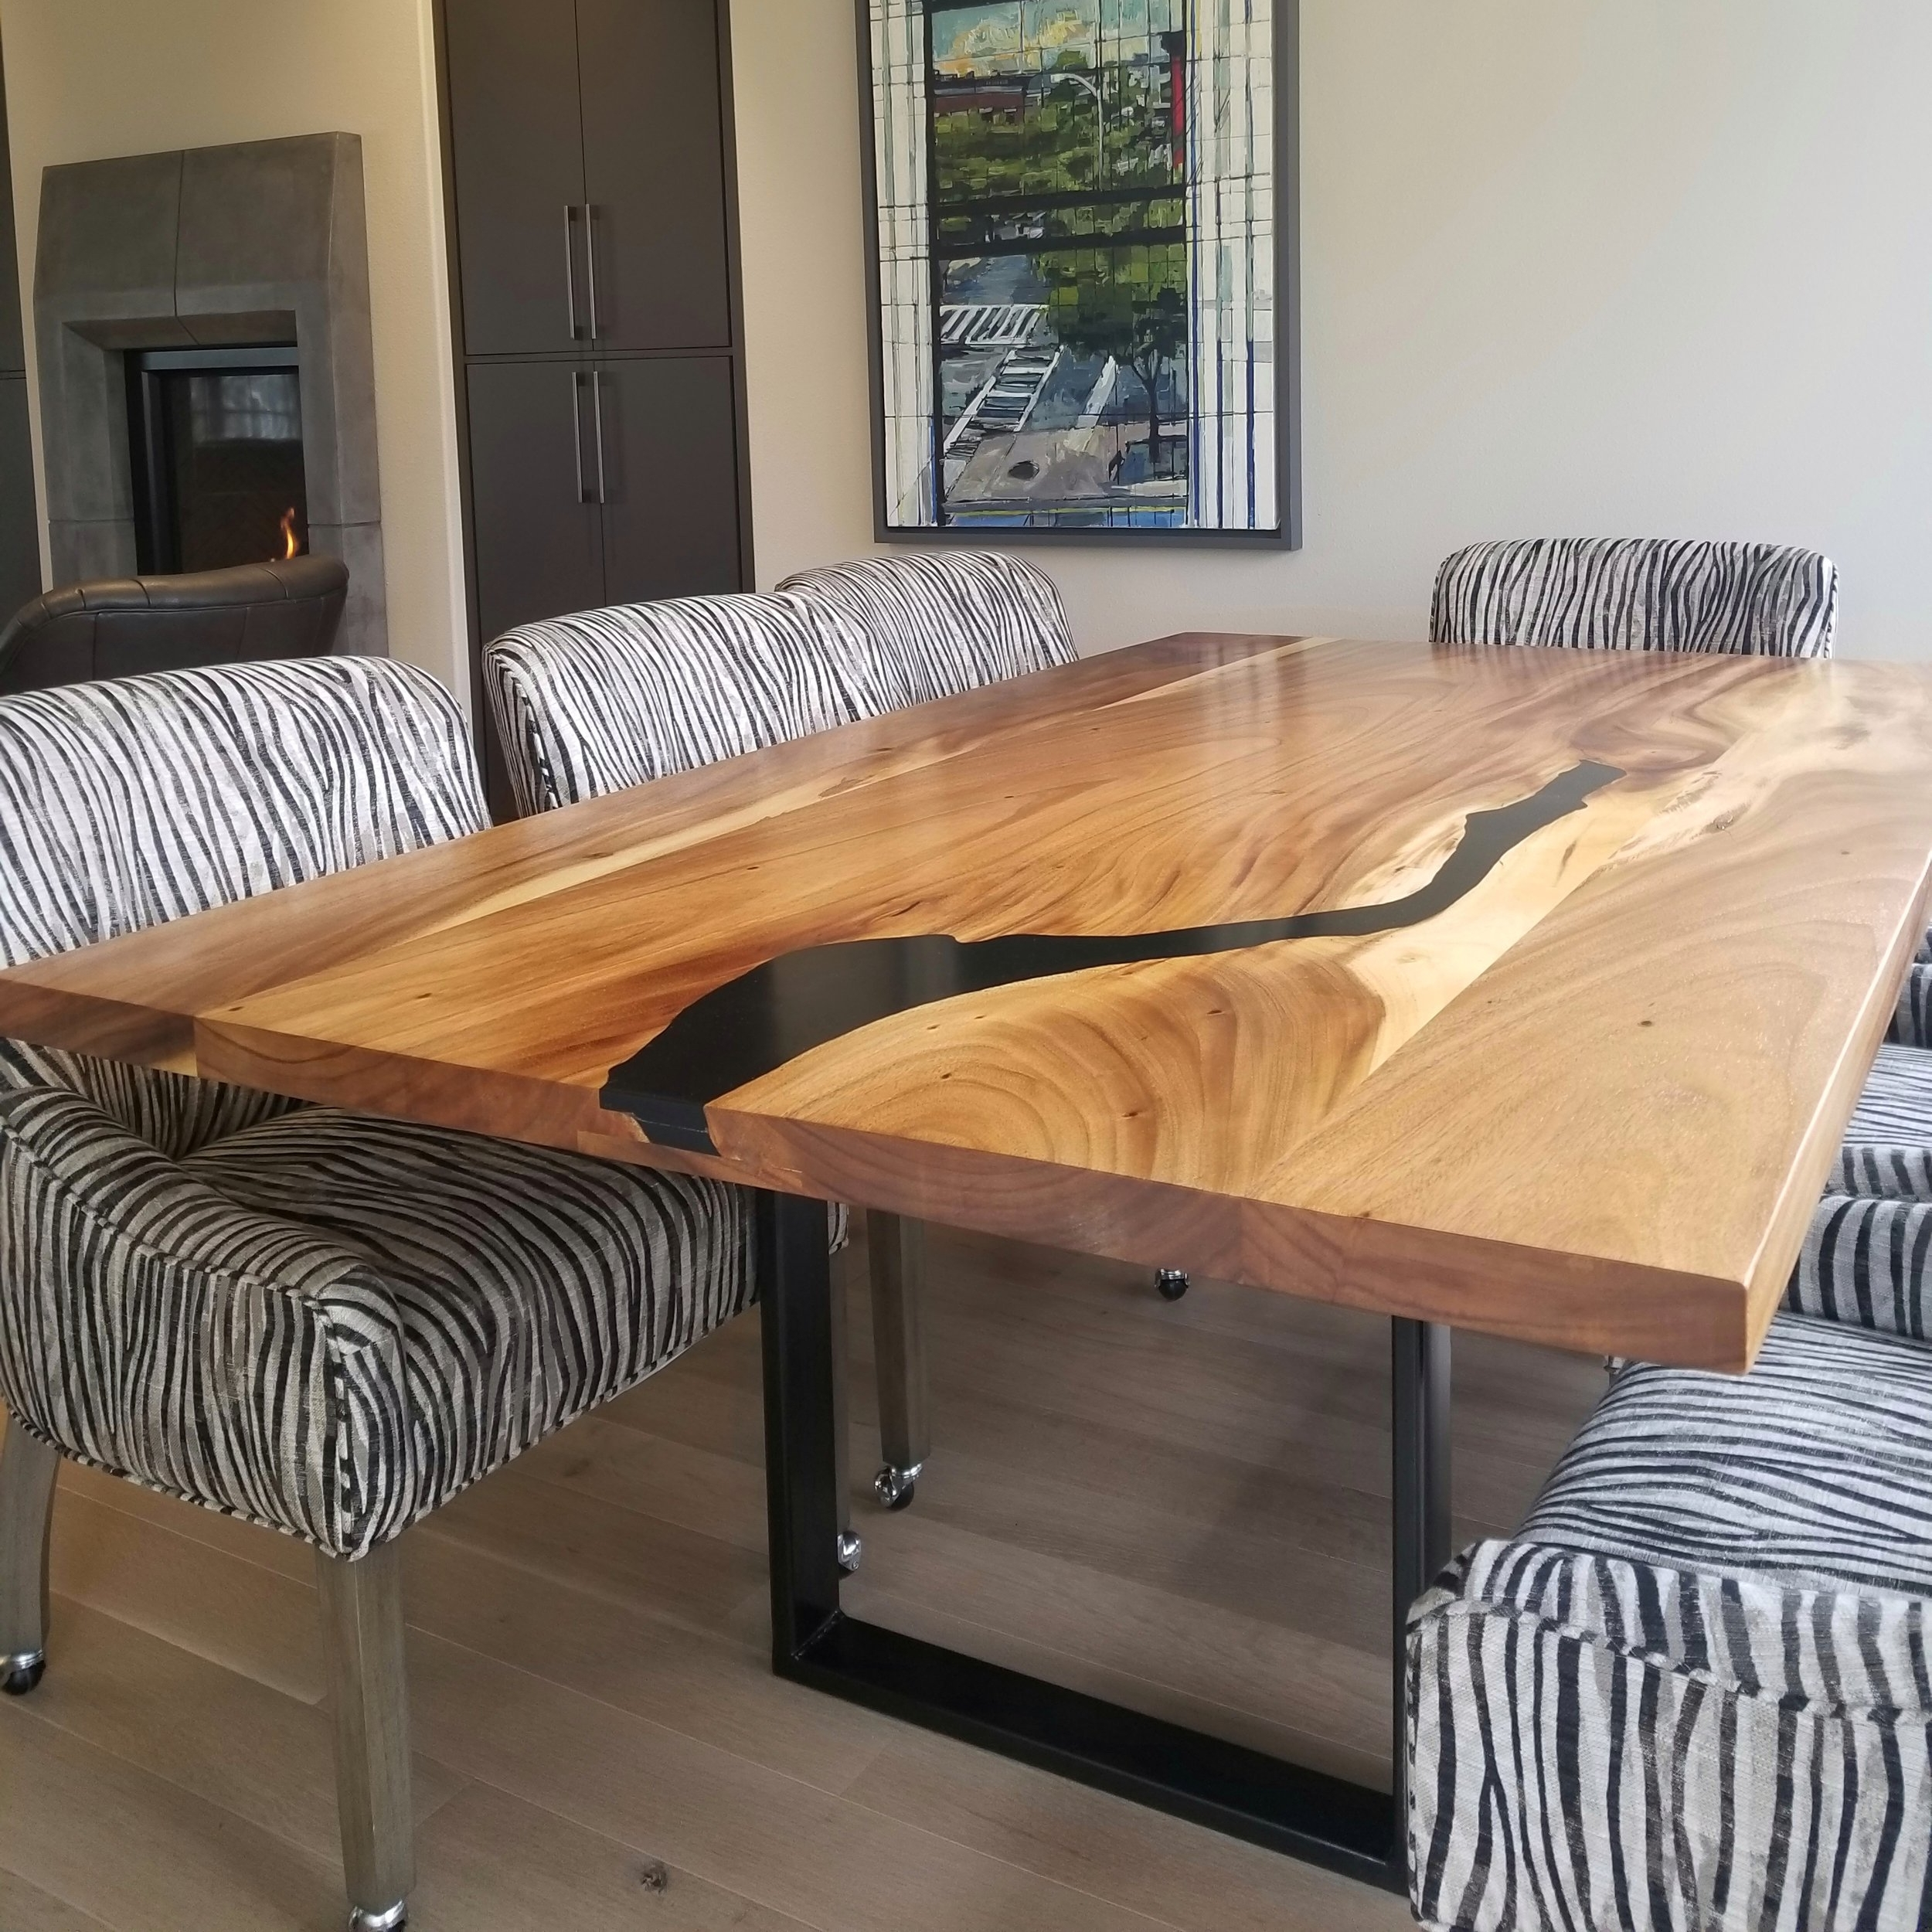 8' Monkeypod Dining Table w/ Jet Black Epoxy Fill